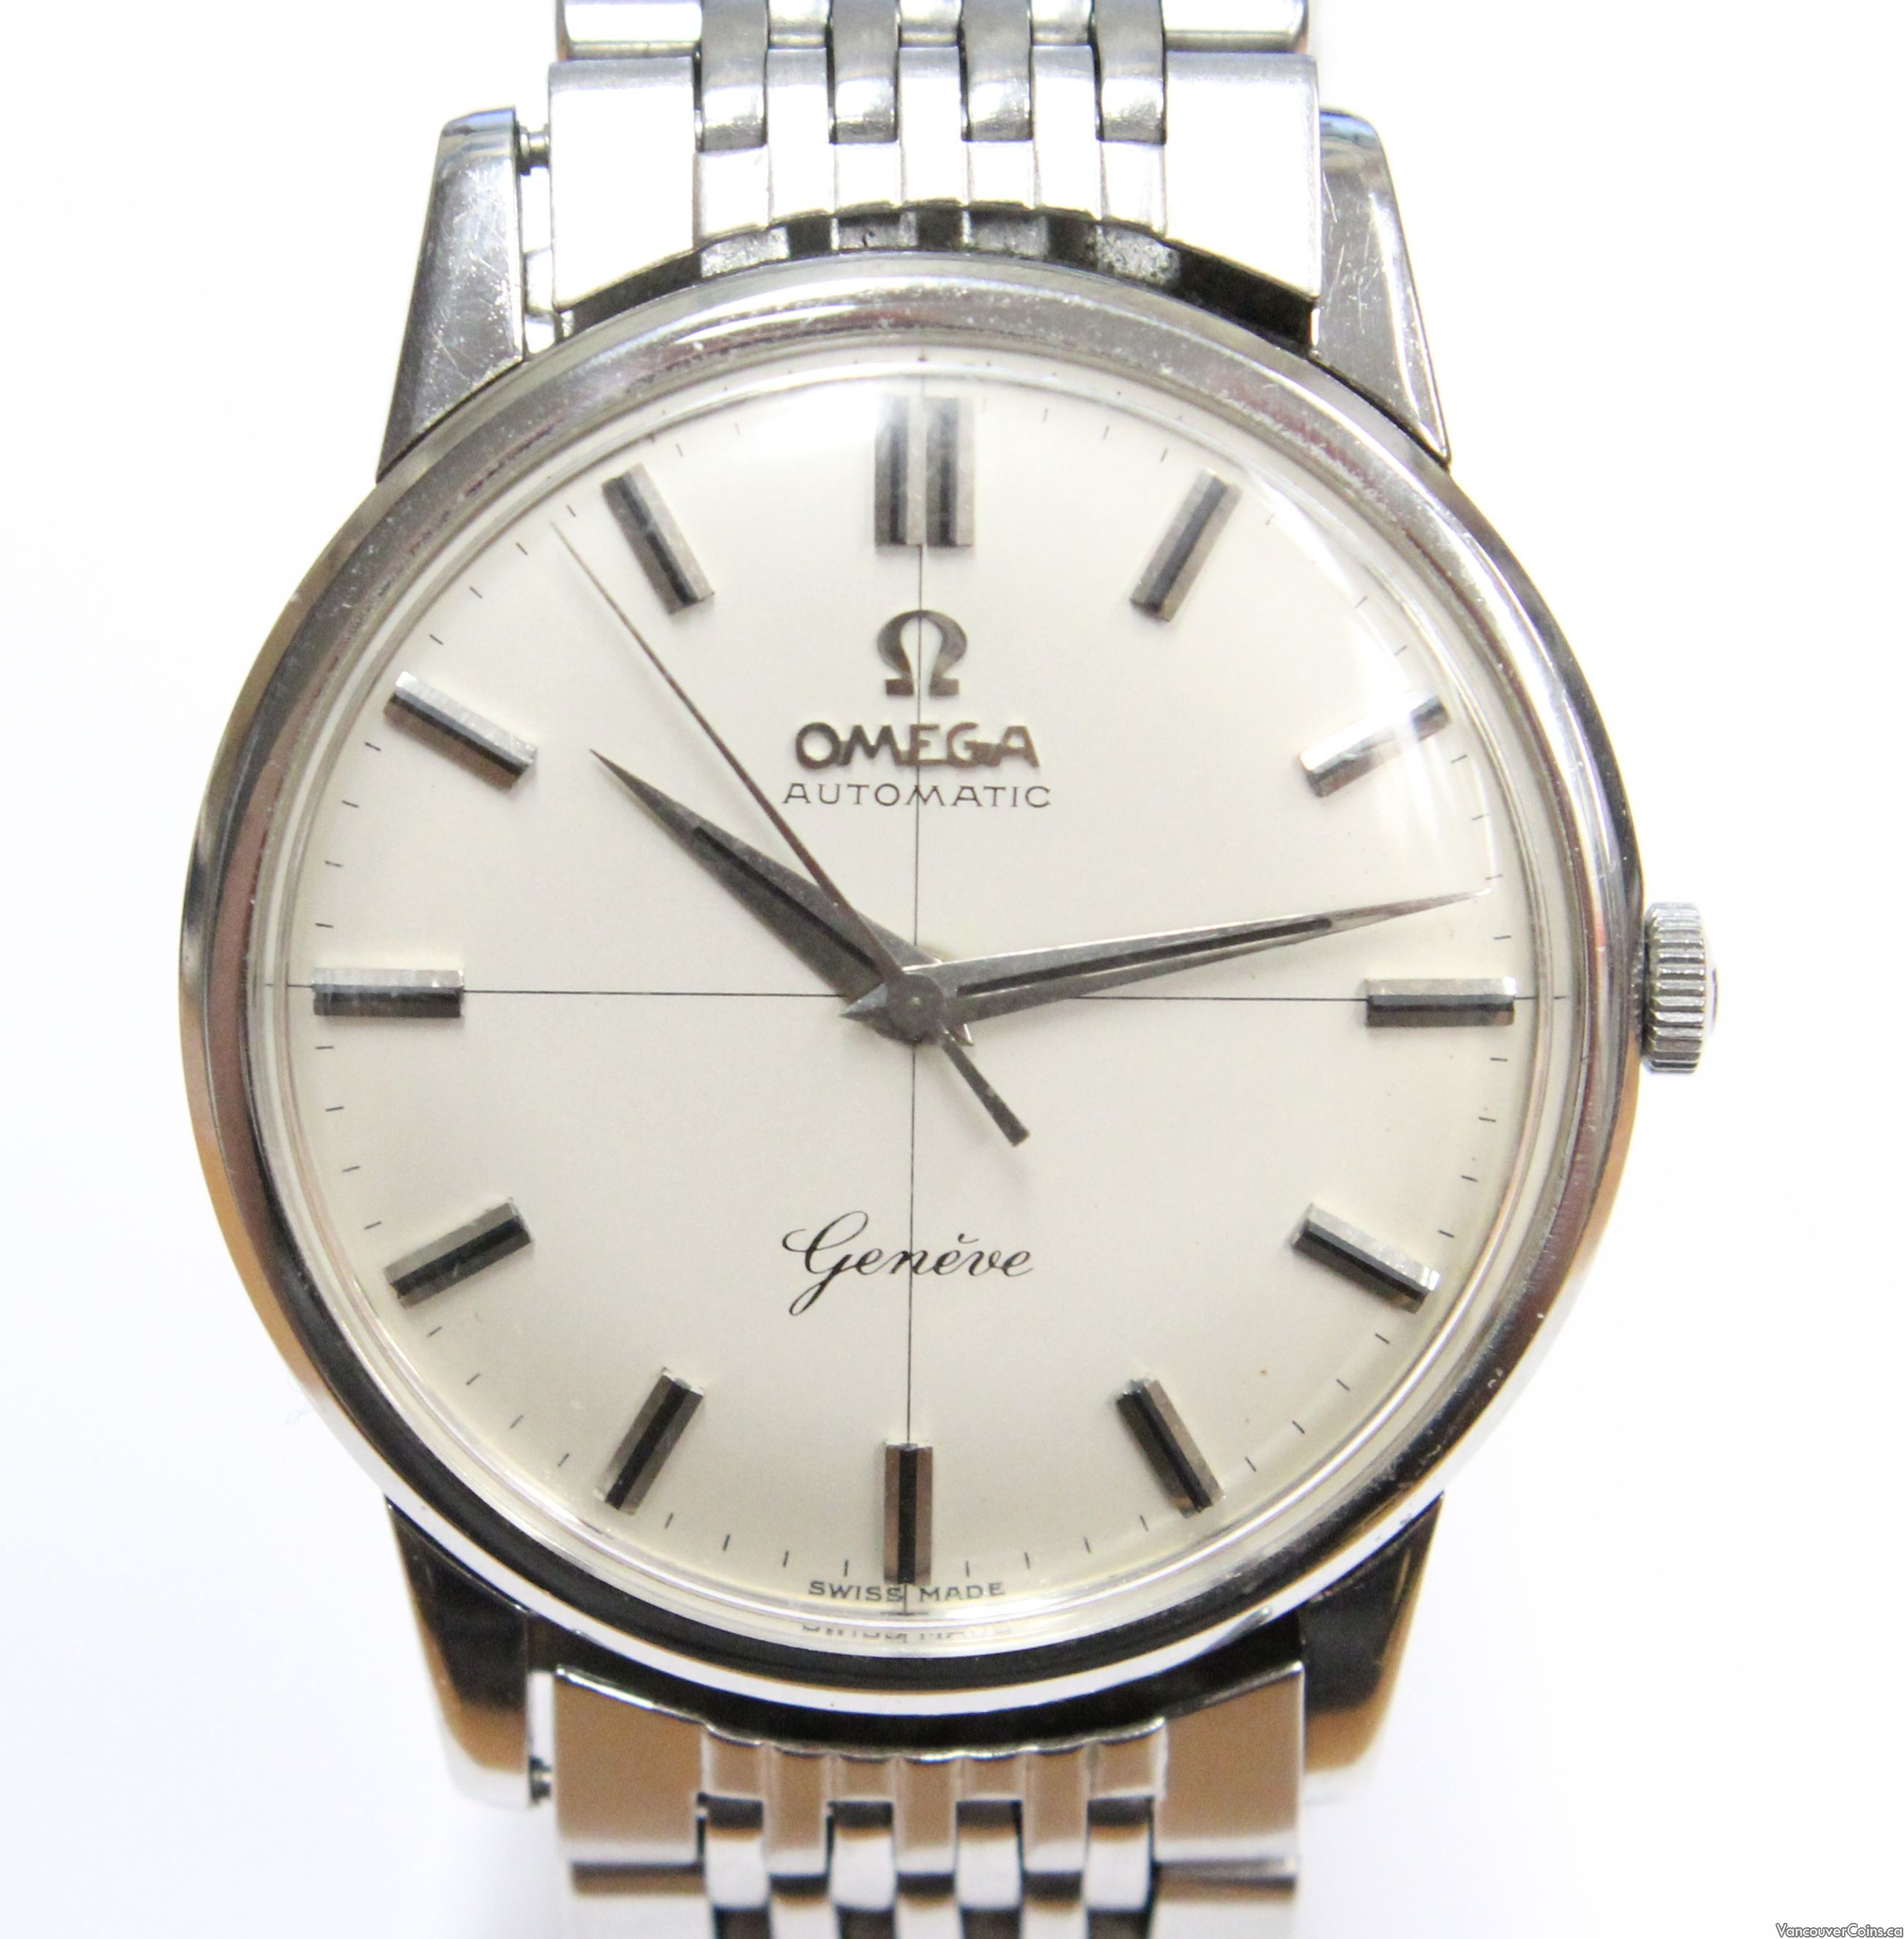 1960 Omega Automatic Geneve 552 24J watch & Omega 1037